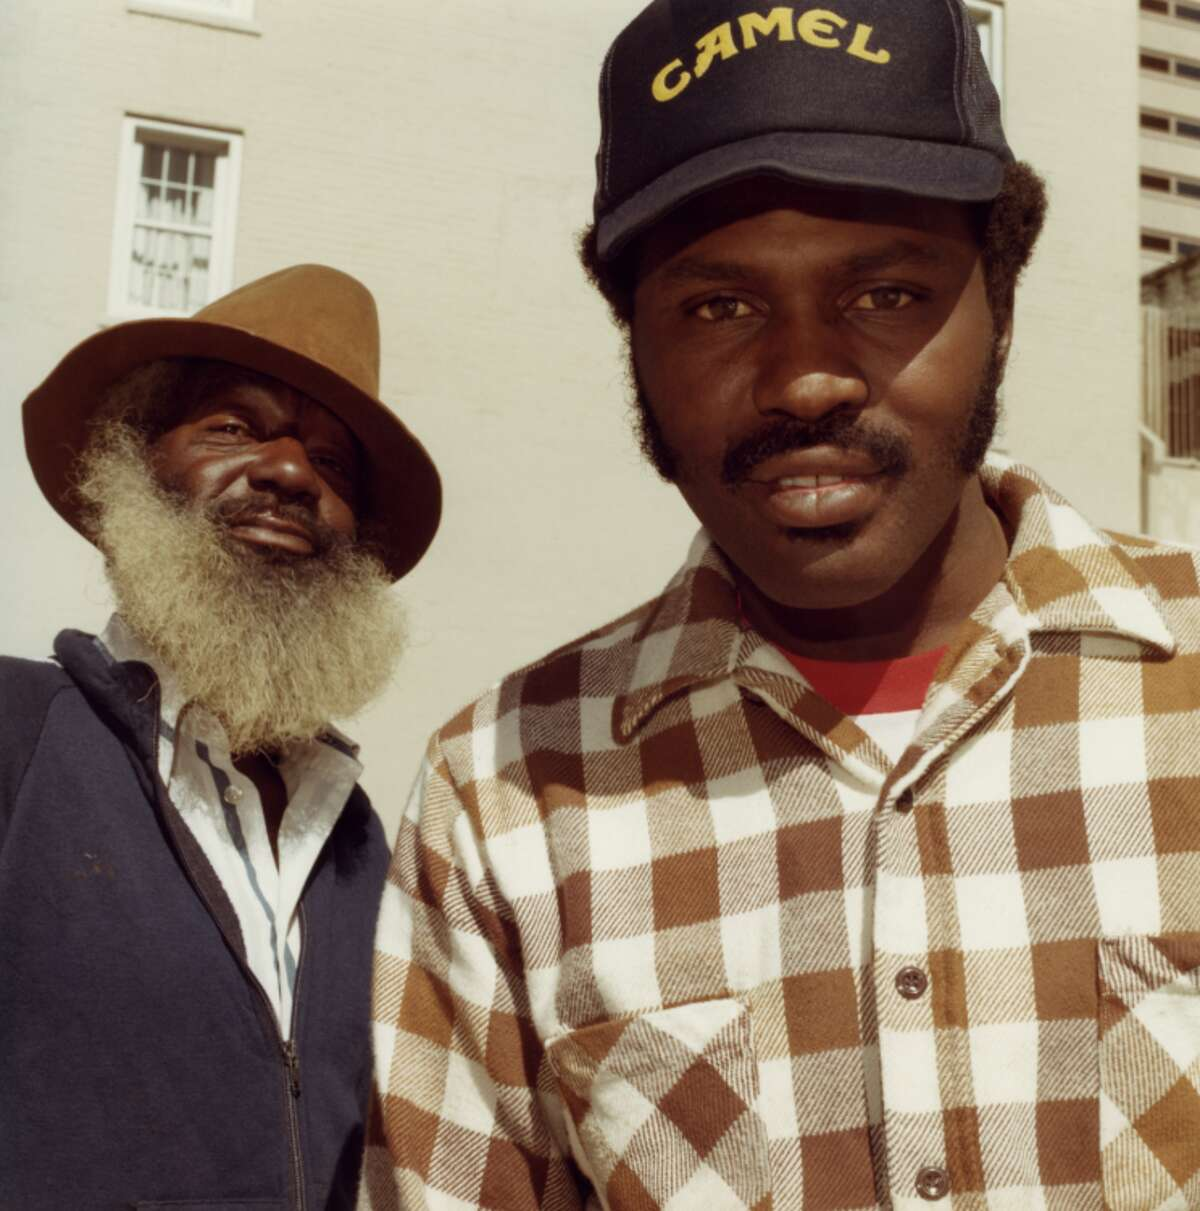 Elbert Howze, a Vietnam veteran and former Houston Center of Photography fellowship winner, captured hundreds of images of Houston and various veteran parades, war demonstrations and travels around the country before his death in 2015, according to the Center for Photography website. Among his work was a photo book titled Fourth Ward, which included portraits of dozens of residents in the historic neighborhood in 1985. The portraits are currently featured in an exhibit at the Houston Center of Photography, titled Motherward. (Source: Elbert Howze, from the exhibition Motherward, 1985, courtesy of Houston Center for Photography)